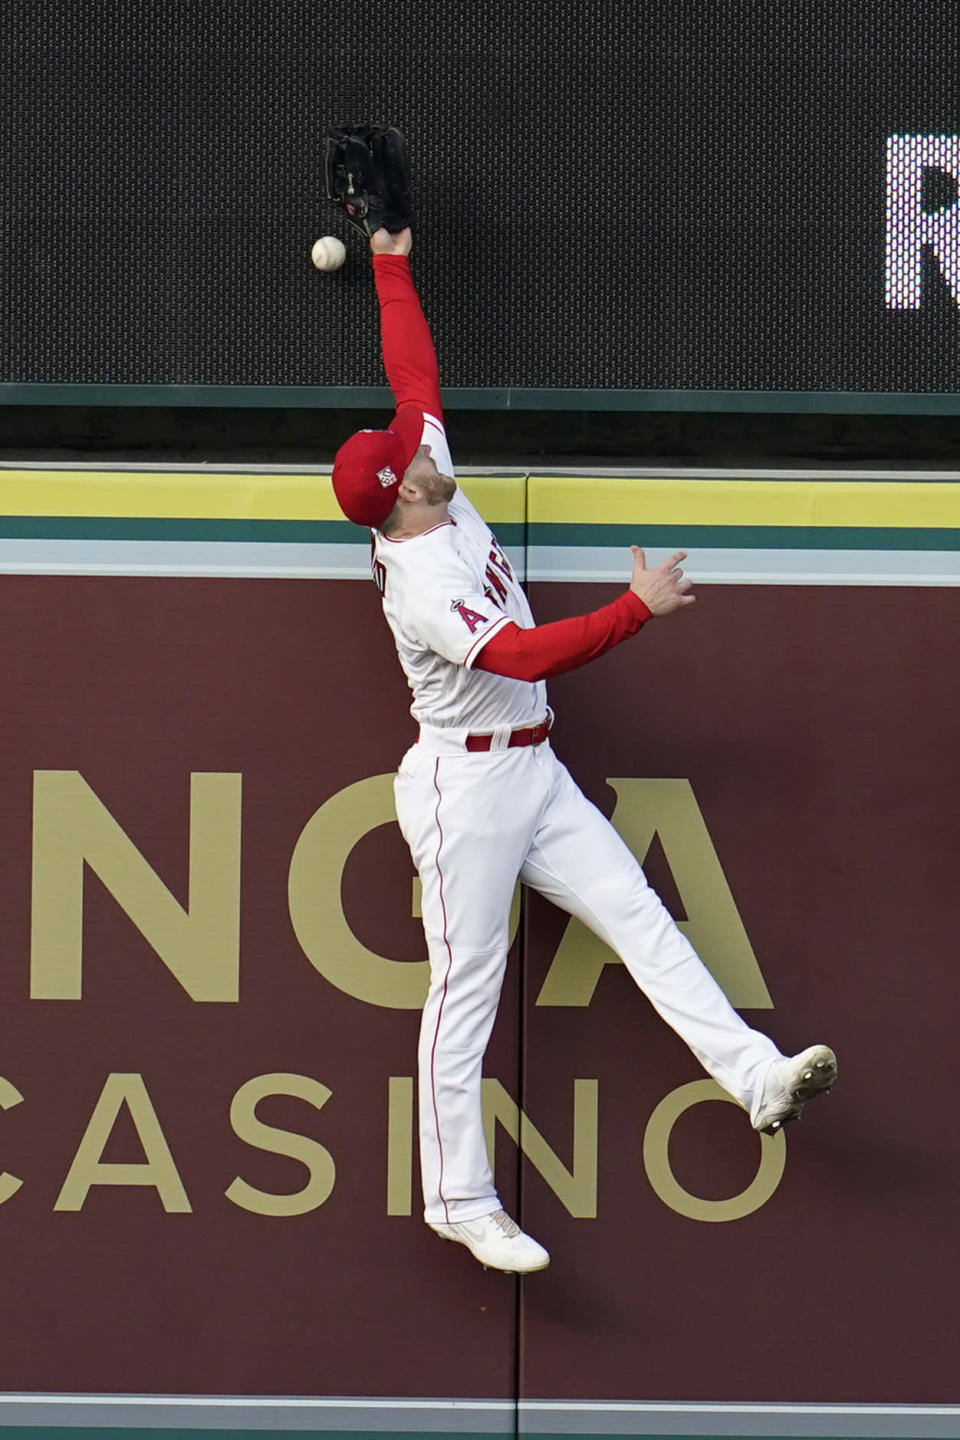 Los Angeles Angels center fielder Taylor Ward leaps but can't catch a home run ball from San Francisco Giants' Mauricio Dubon during the second inning of a baseball game Tuesday, June 22, 2021, in Anaheim, Calif. (AP Photo/Marcio Jose Sanchez)